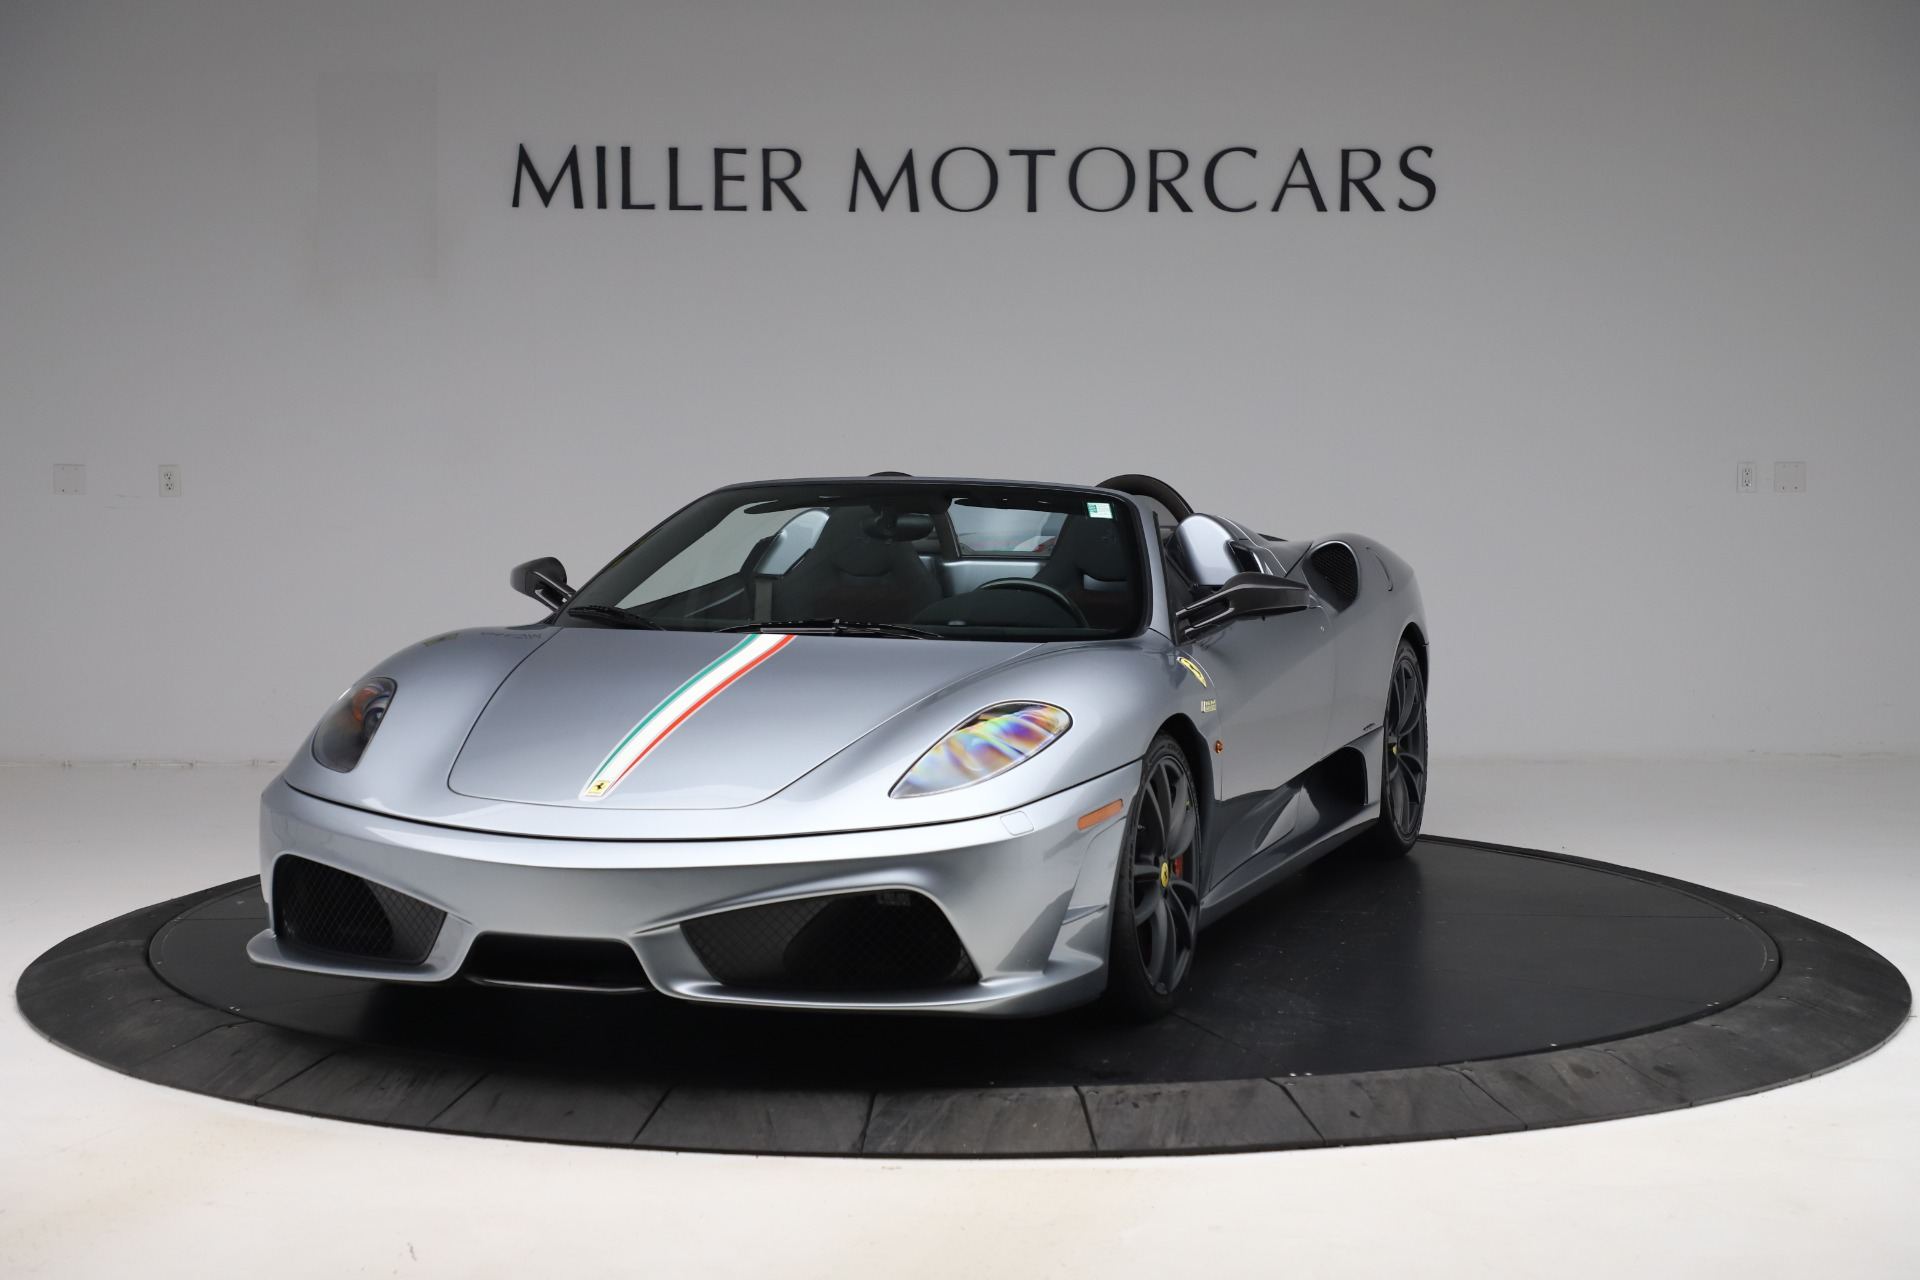 Used 2009 Ferrari 430 Scuderia Spider 16M for sale $322,900 at Pagani of Greenwich in Greenwich CT 06830 1